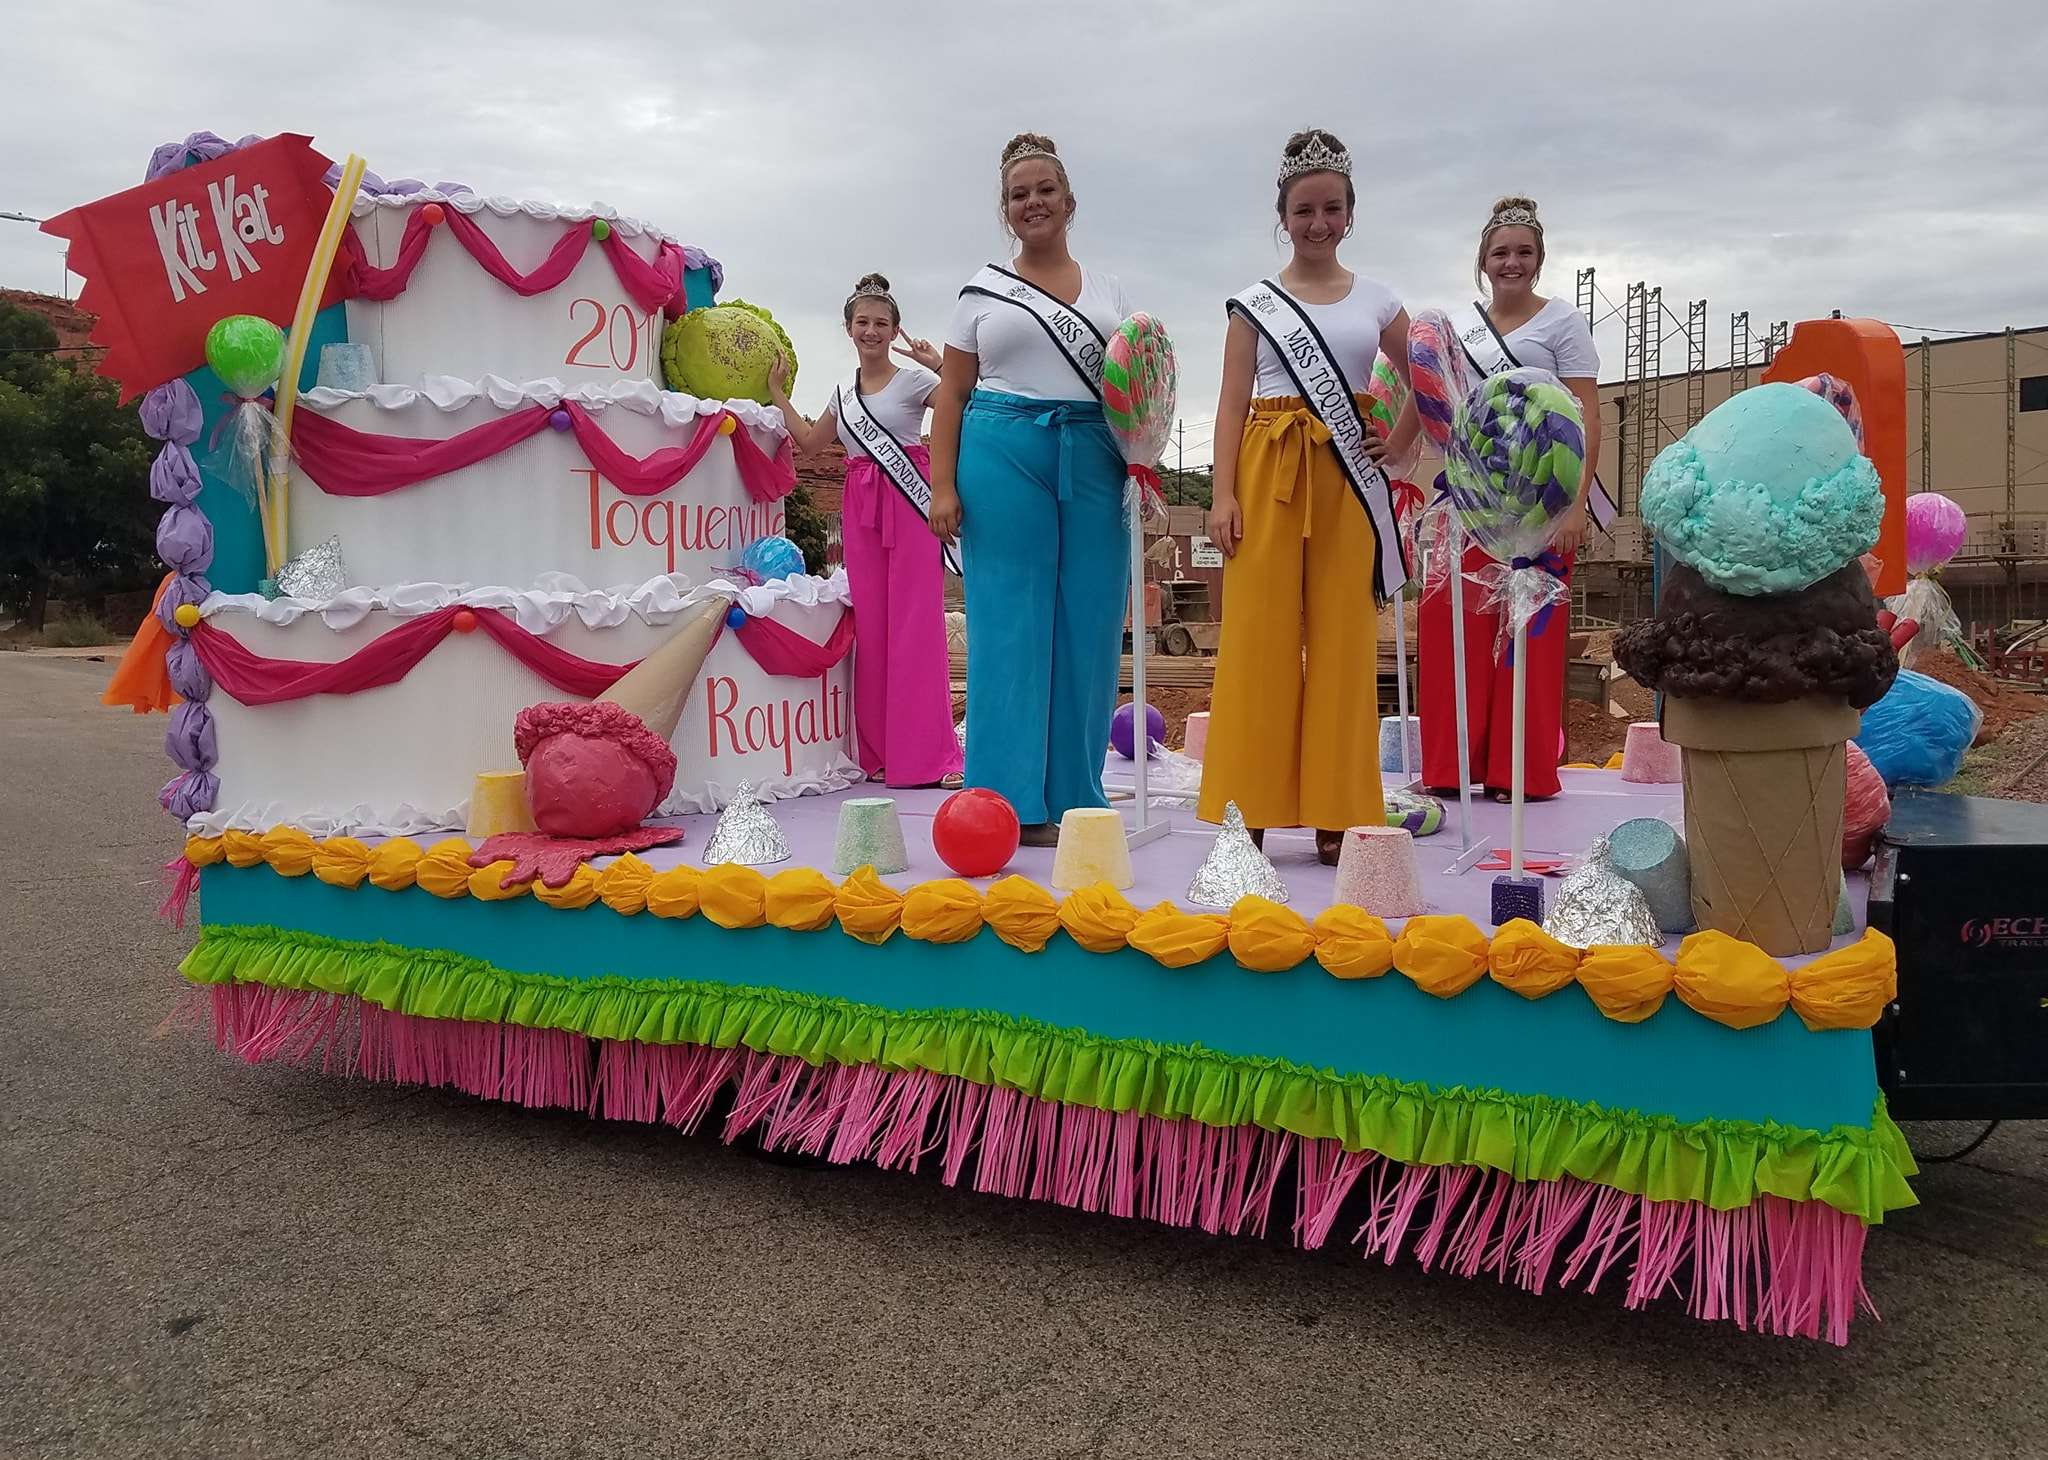 2019 Toquerville Royalty Float